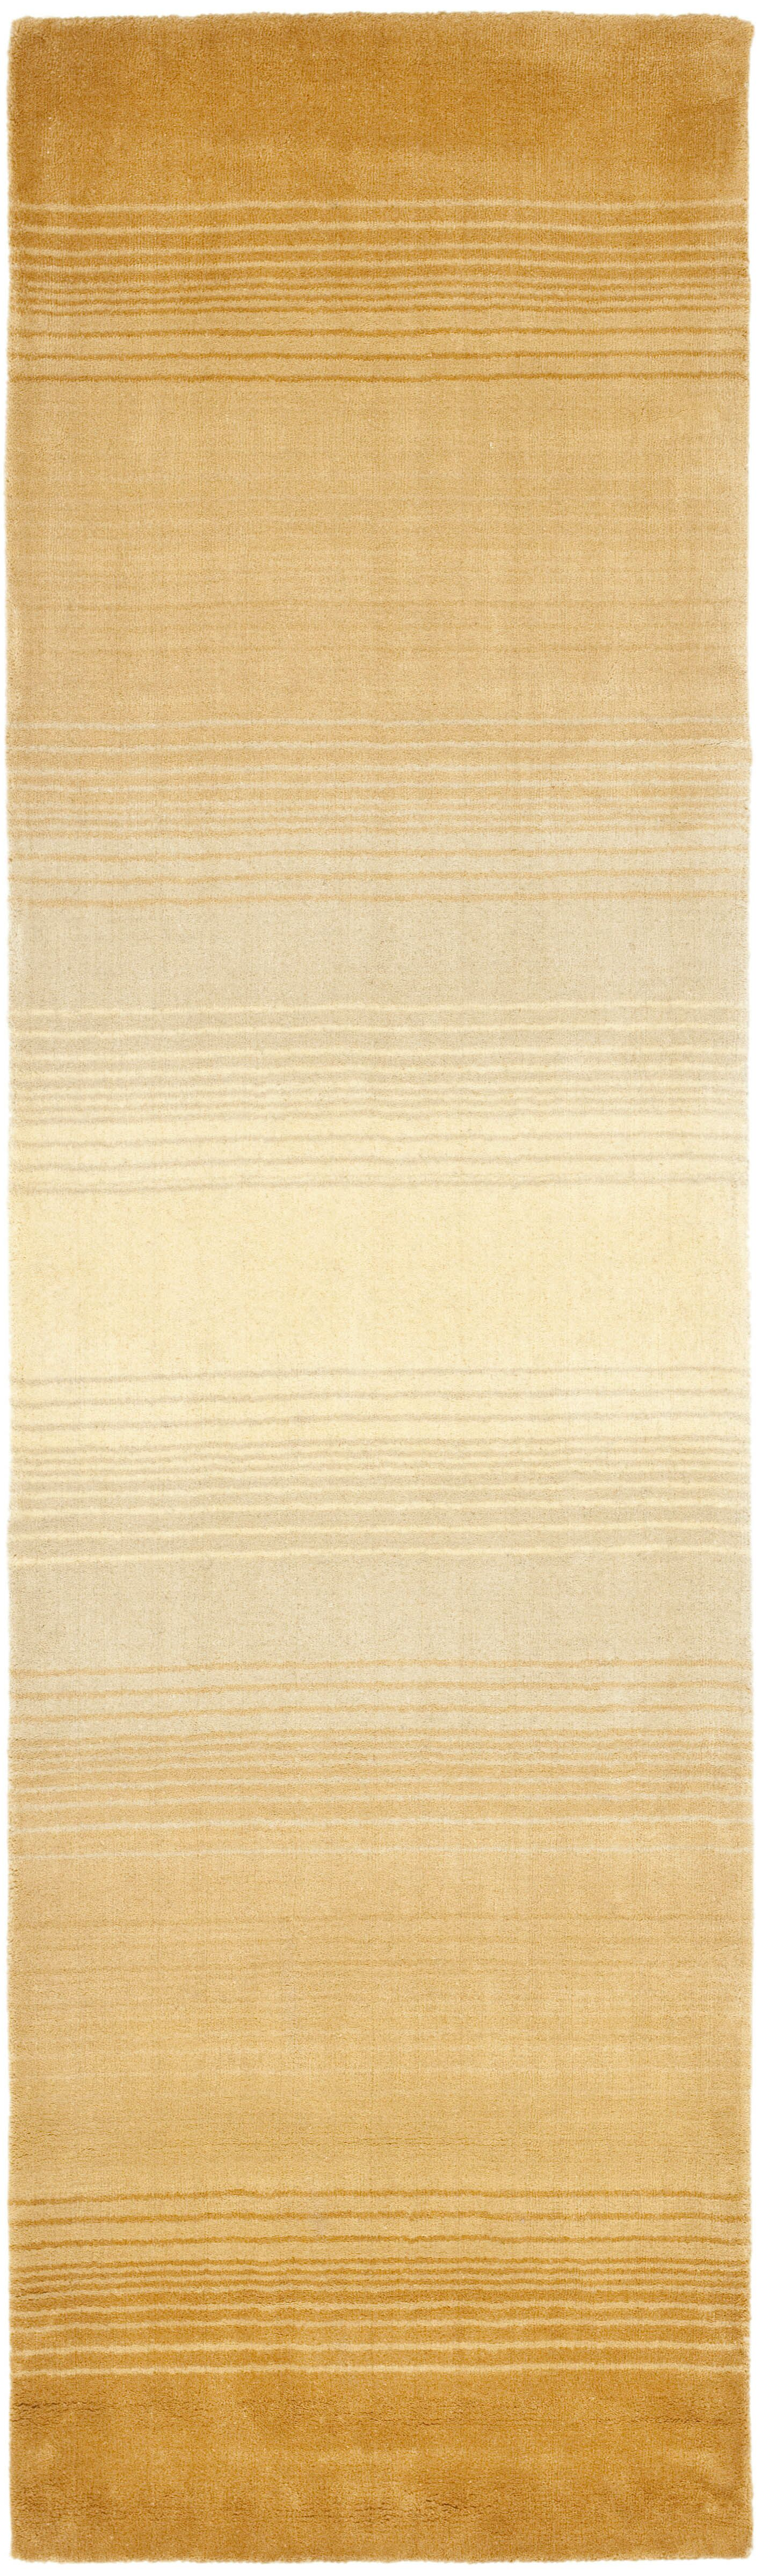 Mcneil Gold Area Rug Rug Size: Rectangle 4' x 6'